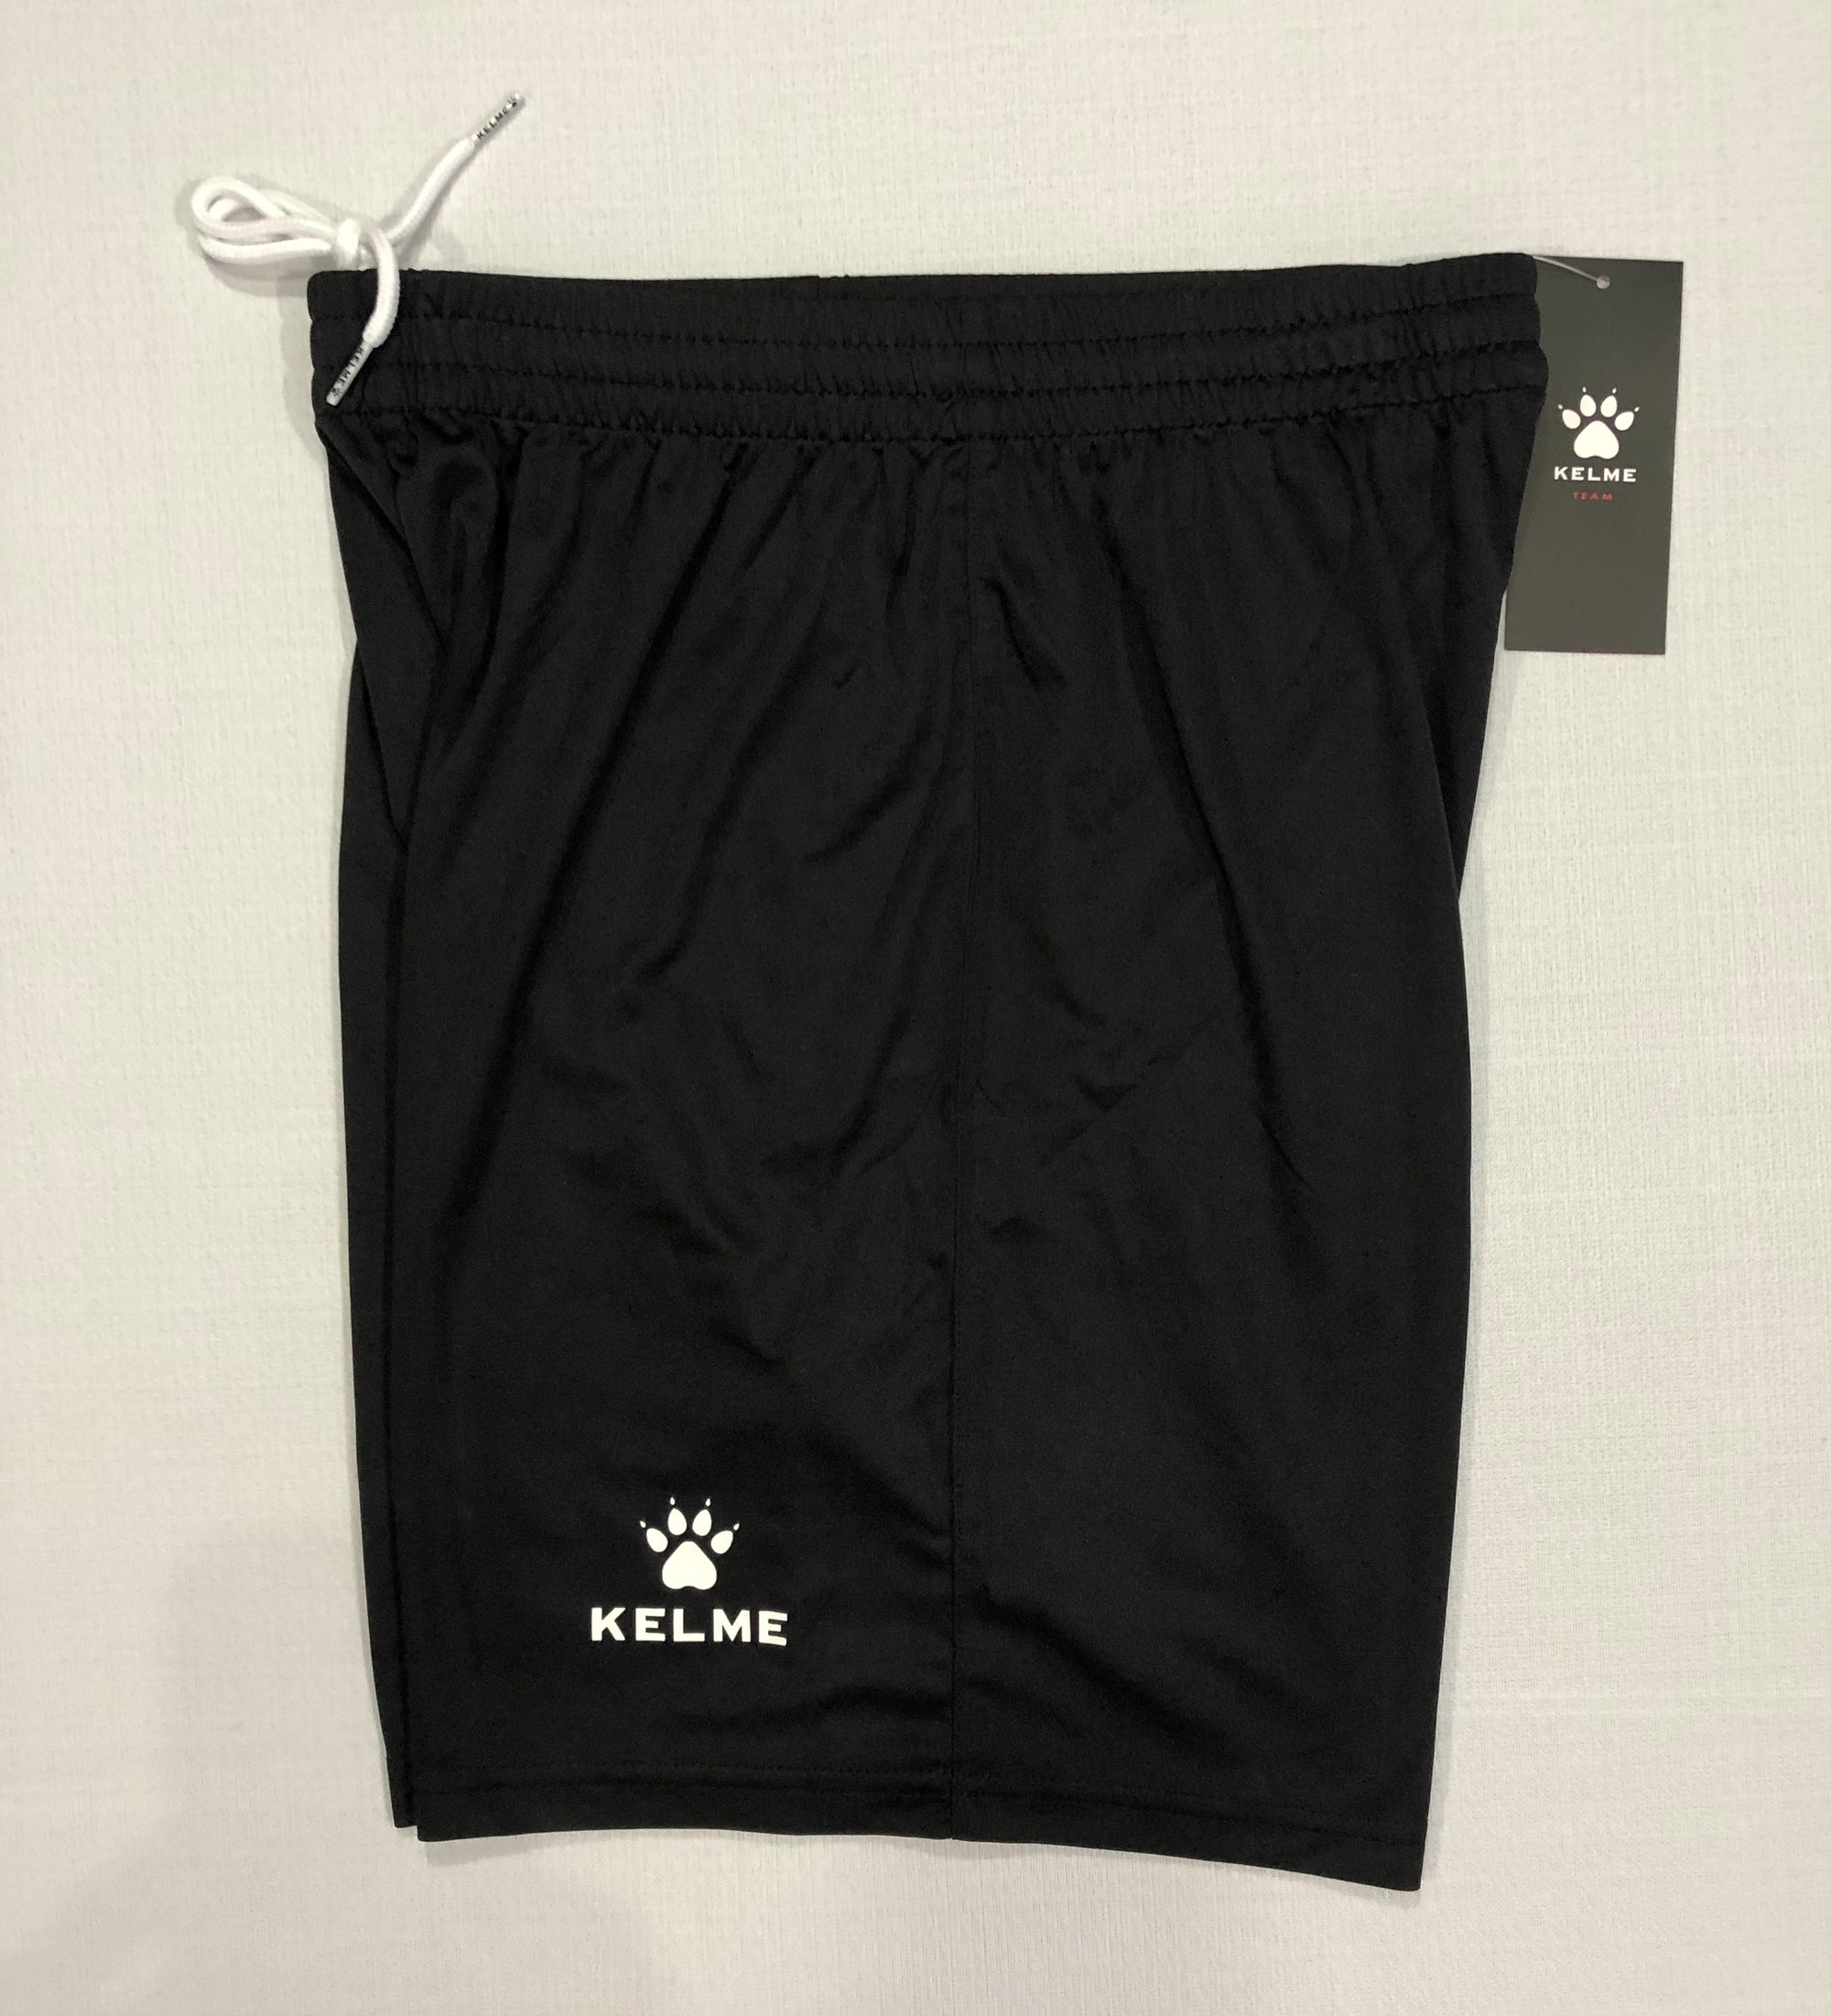 Kelme Adult Short - Black